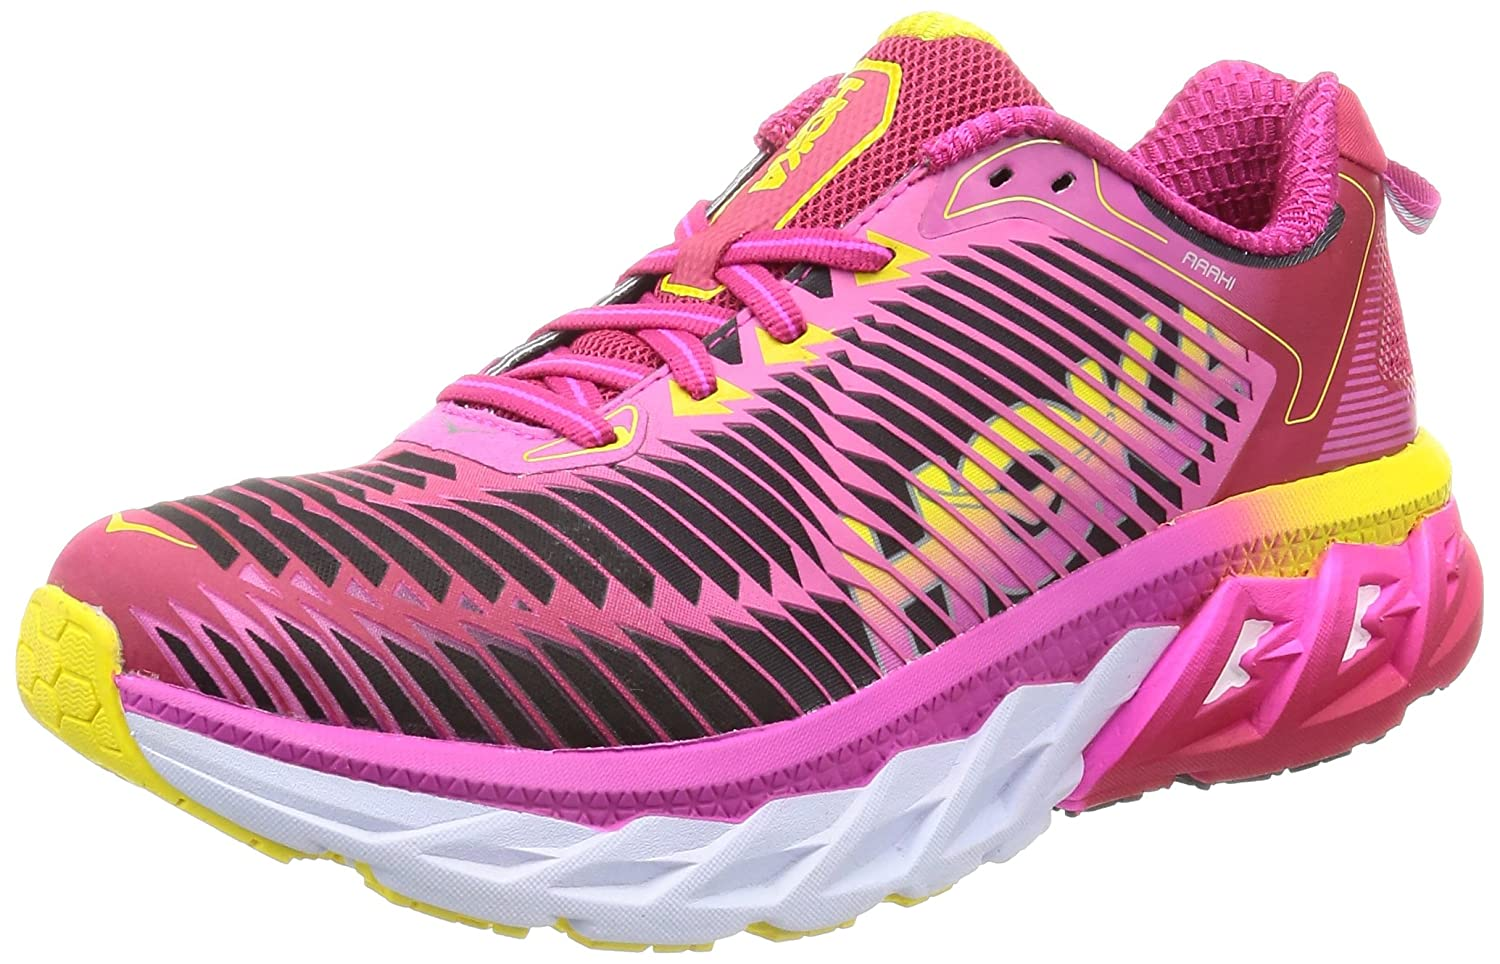 HOKA ONE ONE Mens Arahi Running Shoe B0792M76B2 7 B(M) US|Virtual Pink / Neon Fuchsia